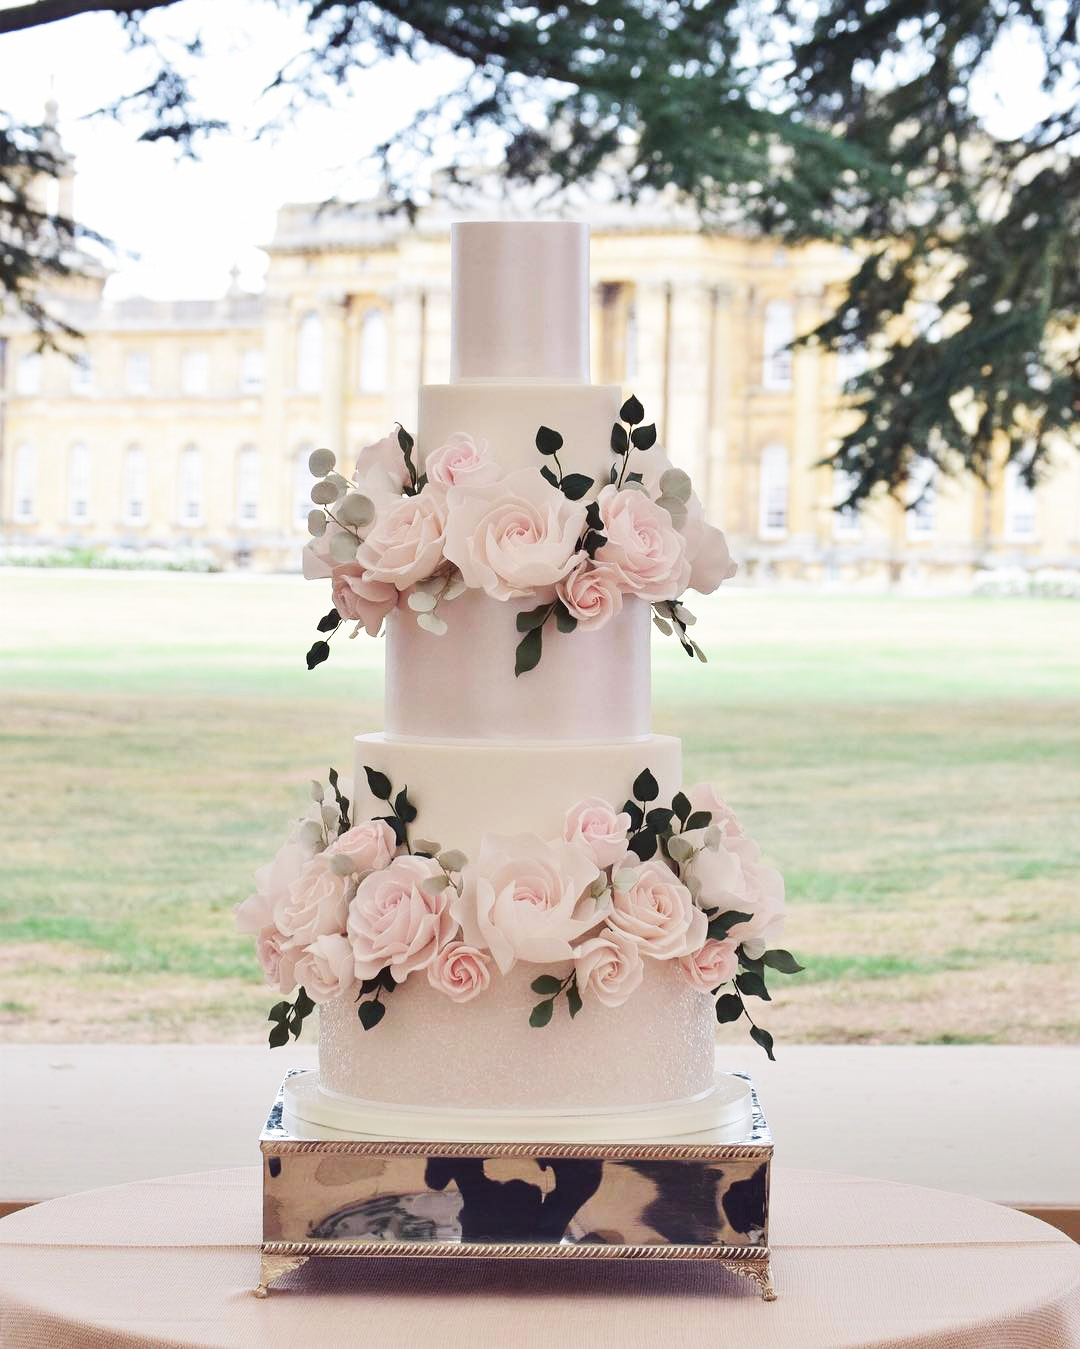 Georges and Camilla Blandford wedding cake by Cotton and Crumbs